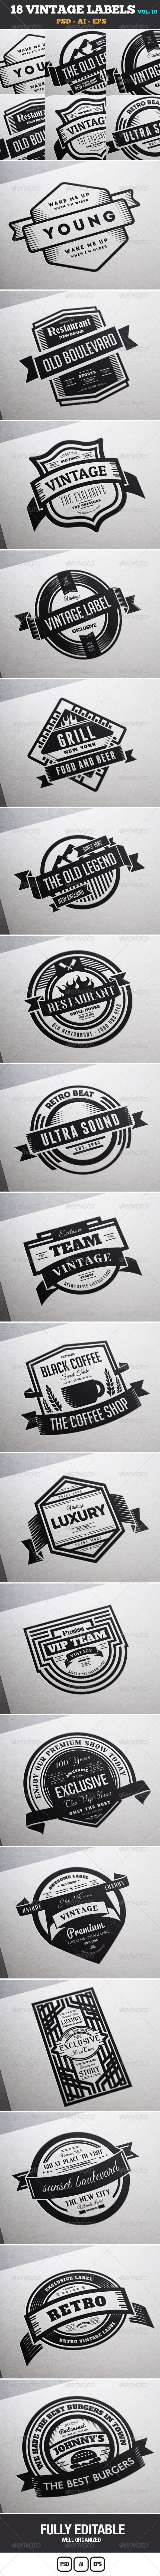 18 Vintage Labels & Badges / Logos / Insignias V10 - Badges & Stickers Web Elements